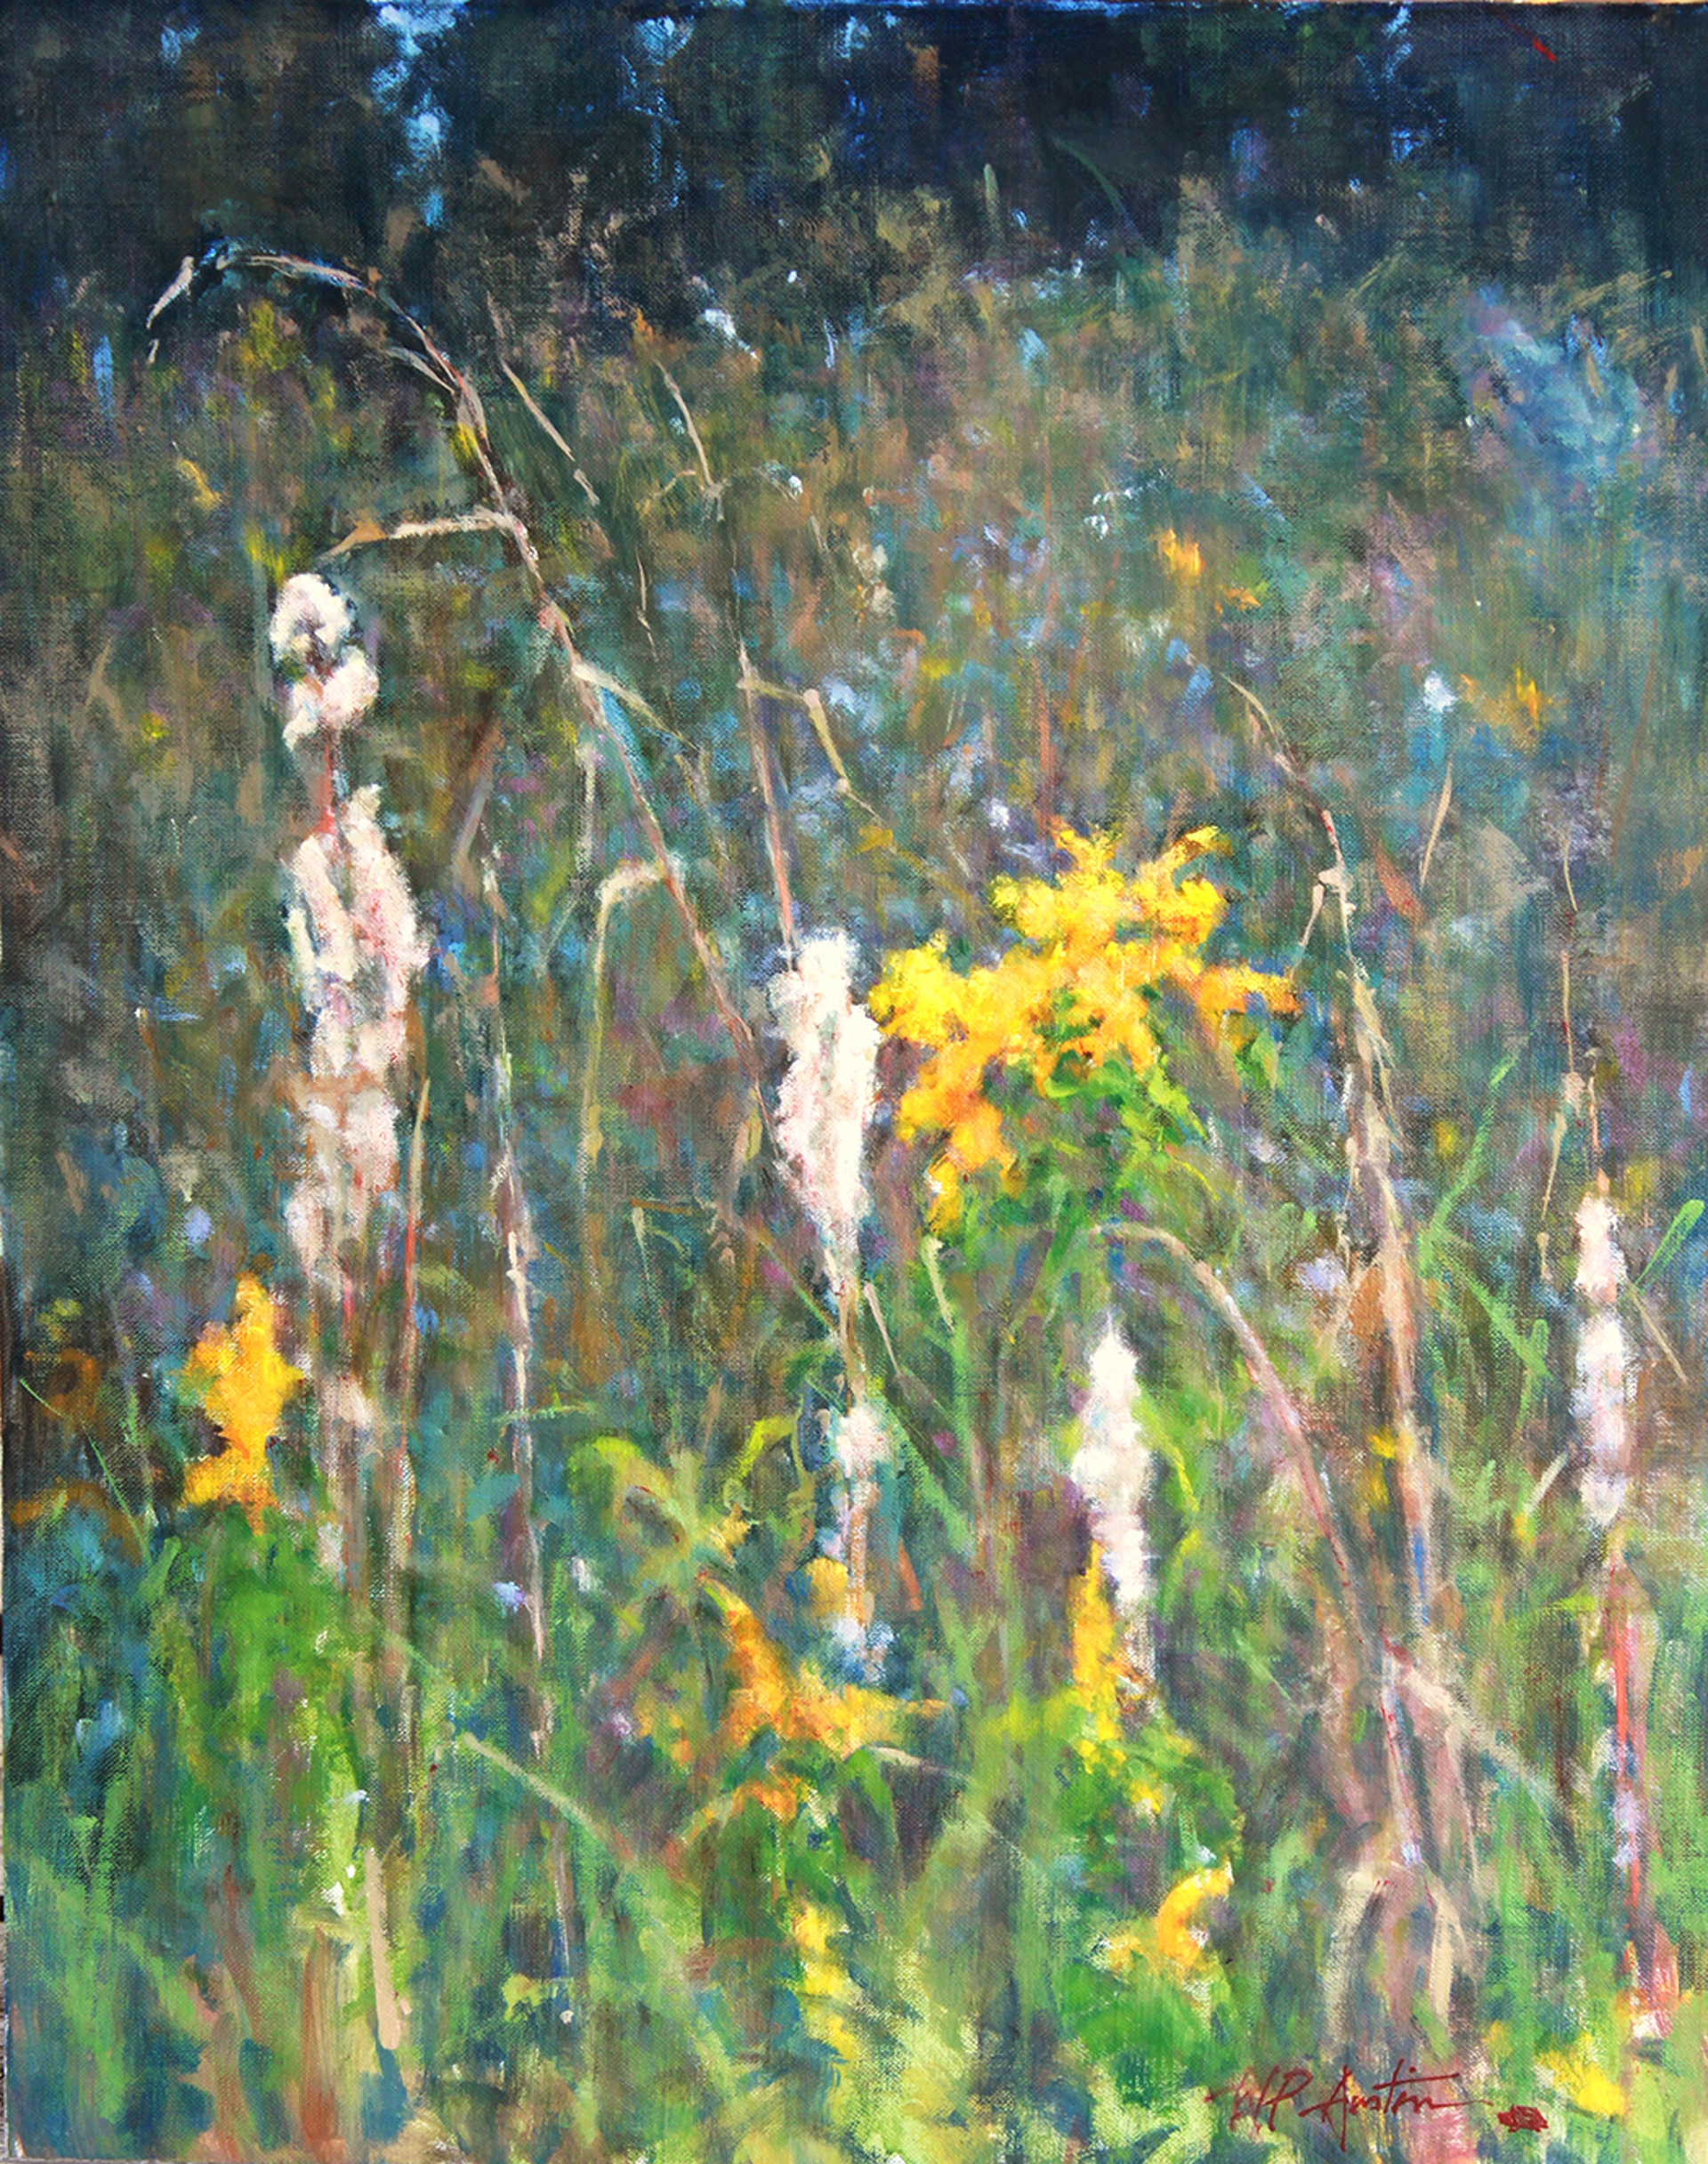 Broomsedge and Golden Rods by Perry Austin